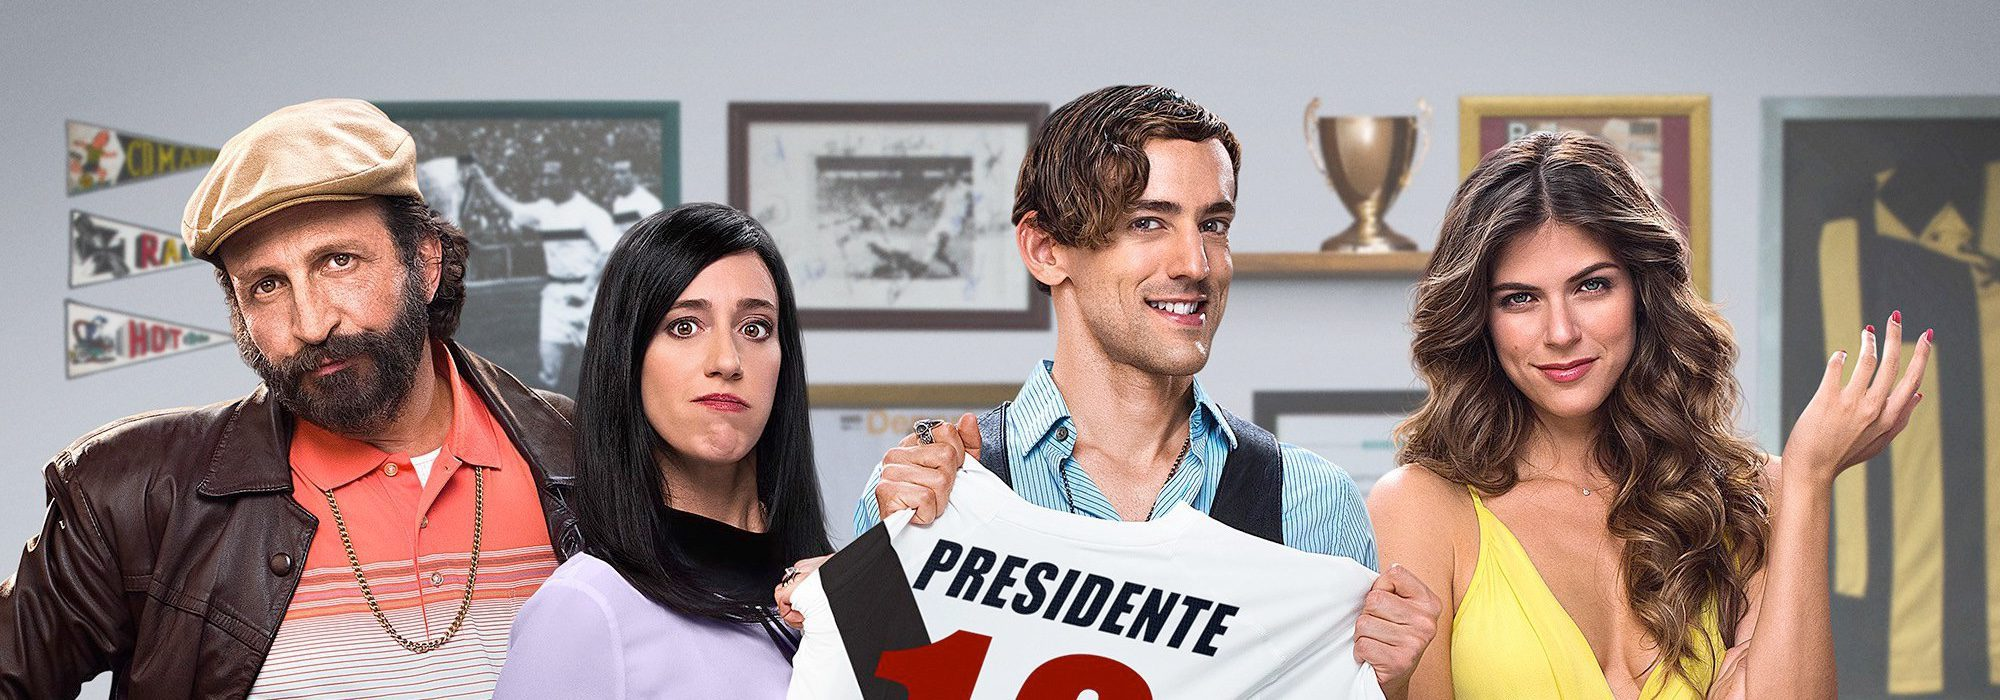 « Club de Cuervos », le Dallas foot à la sauce mexicaine 